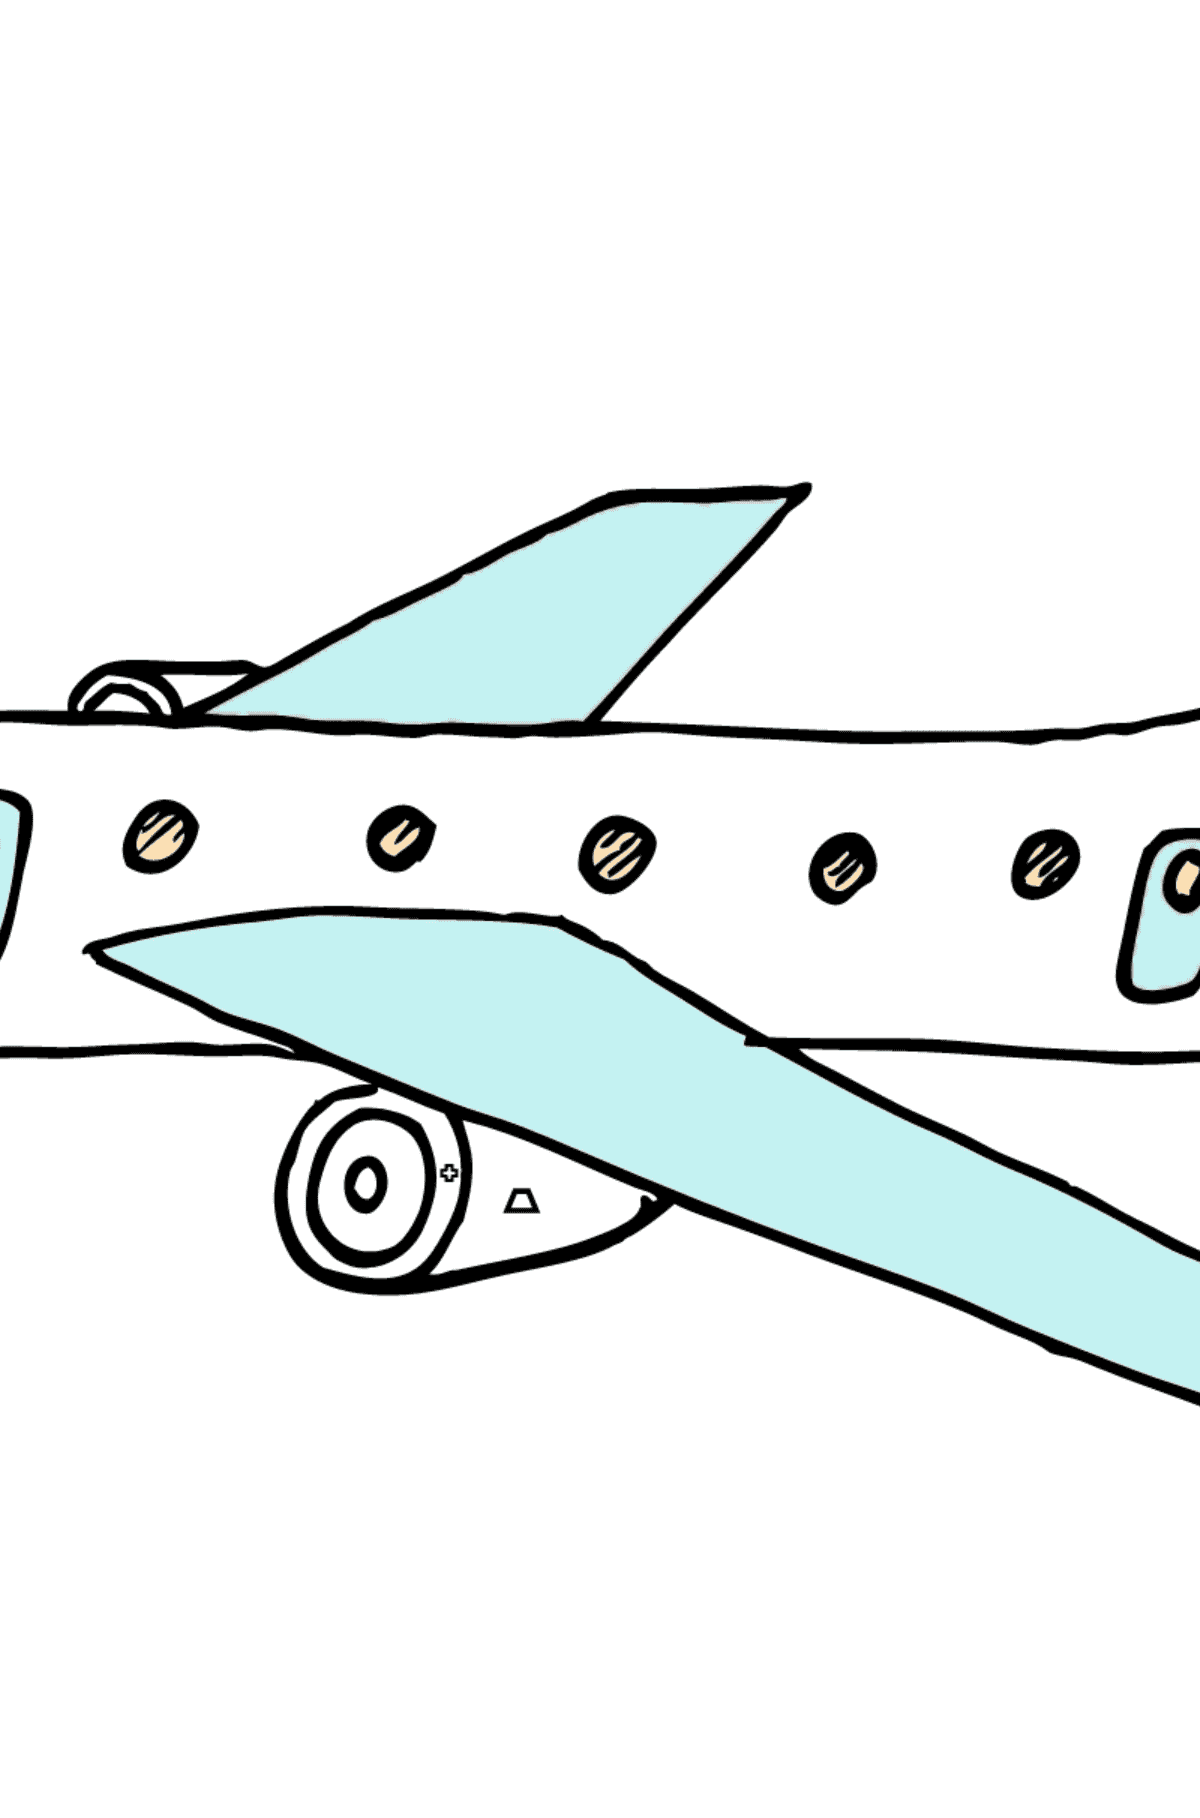 Coloring Page - A Commercial Jet - Coloring by Geometric Shapes for Kids